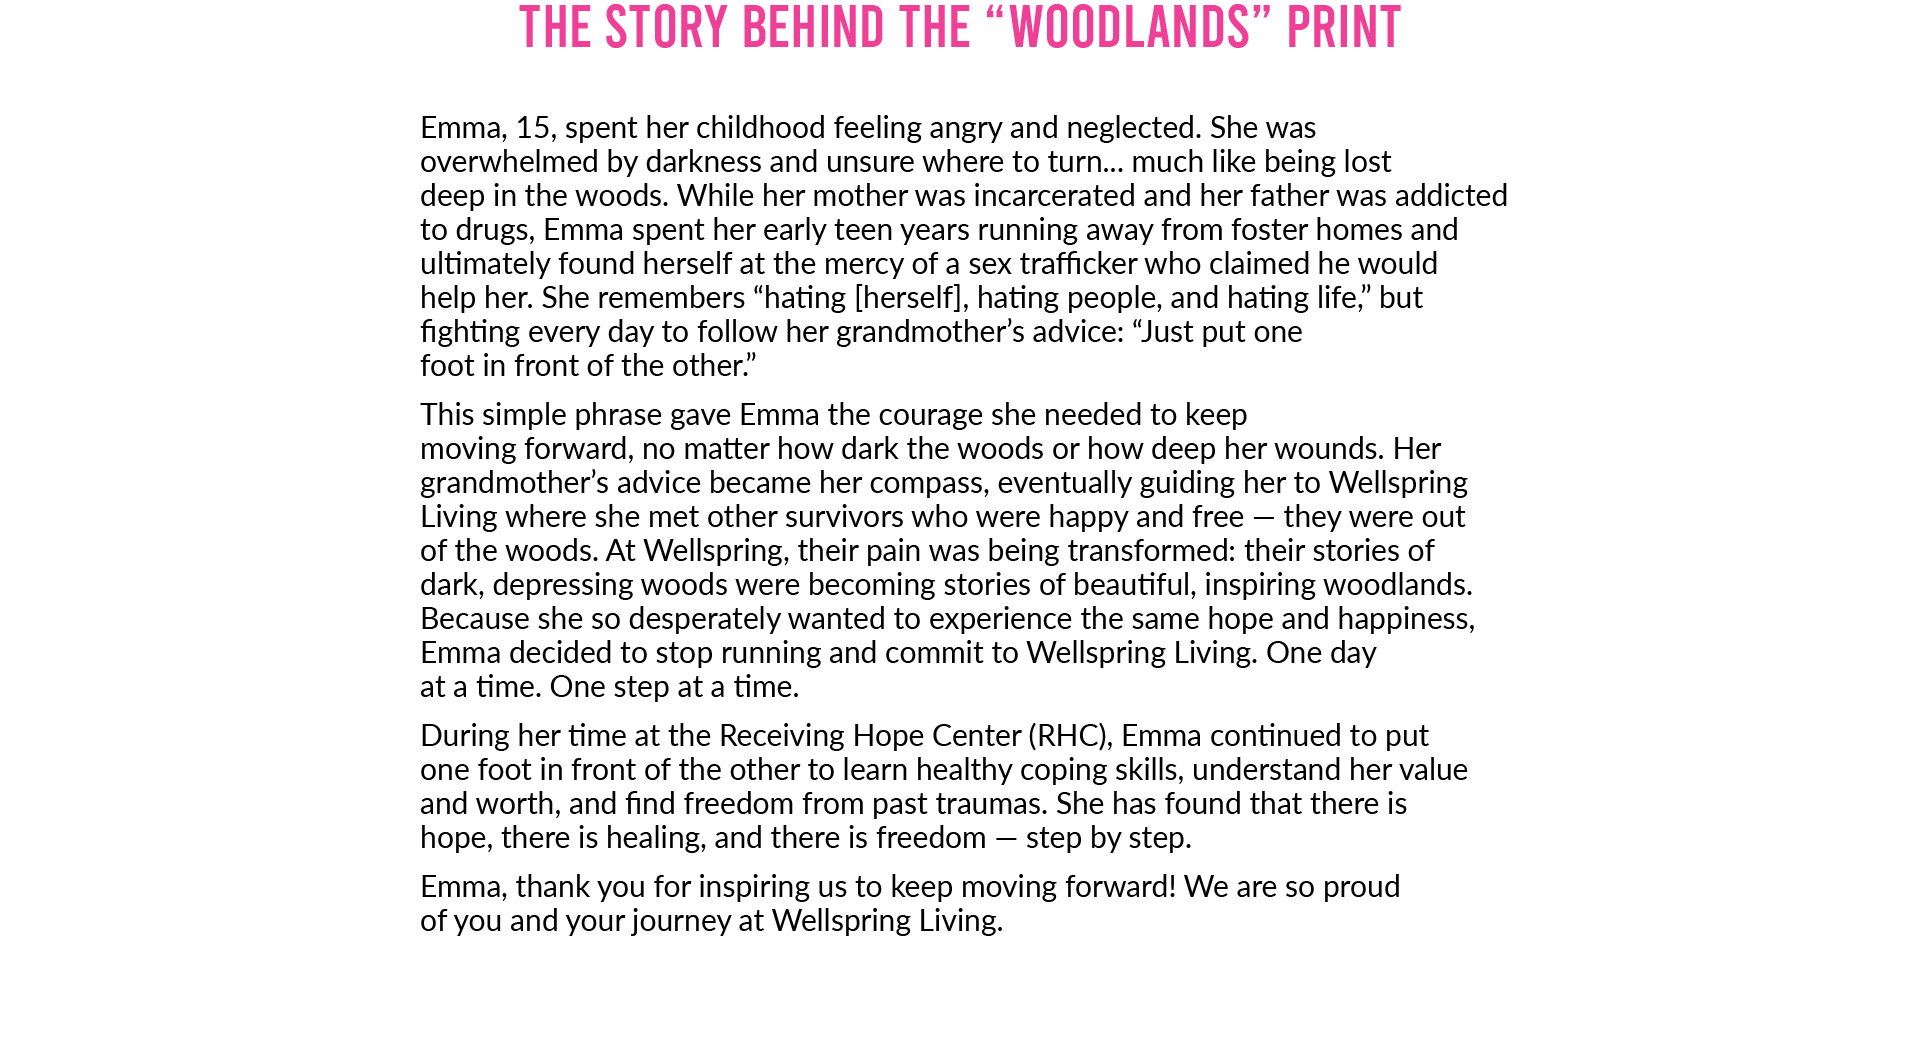 """The story behind the """"Woodlands"""" print. Emma, 15, spent her childhood feeling angry and neglected. She wasoverwhelmed by darkness and unsure where to turn... much like being lostdeep in the woods. While her mother was incarcerated and her father was addicted to drugs, Emma spent her early teen years running away from foster homes and ultimately found herself at the mercy of a sex trafficker who claimed he wouldhelp her. She remembers """"hating [herself], hating people, and hating life,"""" but fighting every day to follow her grandmother's advice: """"Just put onefoot in front of the other."""" This simple phrase gave Emma the courage she needed to keepmoving forward, no matter how dark the woods or how deep her wounds. Her grandmother's advice became her compass, eventually guiding her to Wellspring Living where she met other survivors who were happy and free — they were outof the woods. At Wellspring, their pain was being transformed: their stories ofdark, depressing woods were becoming stories of beautiful, inspiring woodlands. Because she so desperately wanted to experience the same hope and happiness, Emma decided to stop running and commit to Wellspring Living. One dayat a time. One step at a time. During her time at the Receiving Hope Center (RHC), Emma continued to putone foot in front of the other to learn healthy coping skills, understand her value and worth, and find freedom from past traumas. She has found that there ishope, there is healing, and there is freedom — step by step. Emma, thank you for inspiring us to keep moving forward! We are so proudof you and your journey at Wellspring Living."""